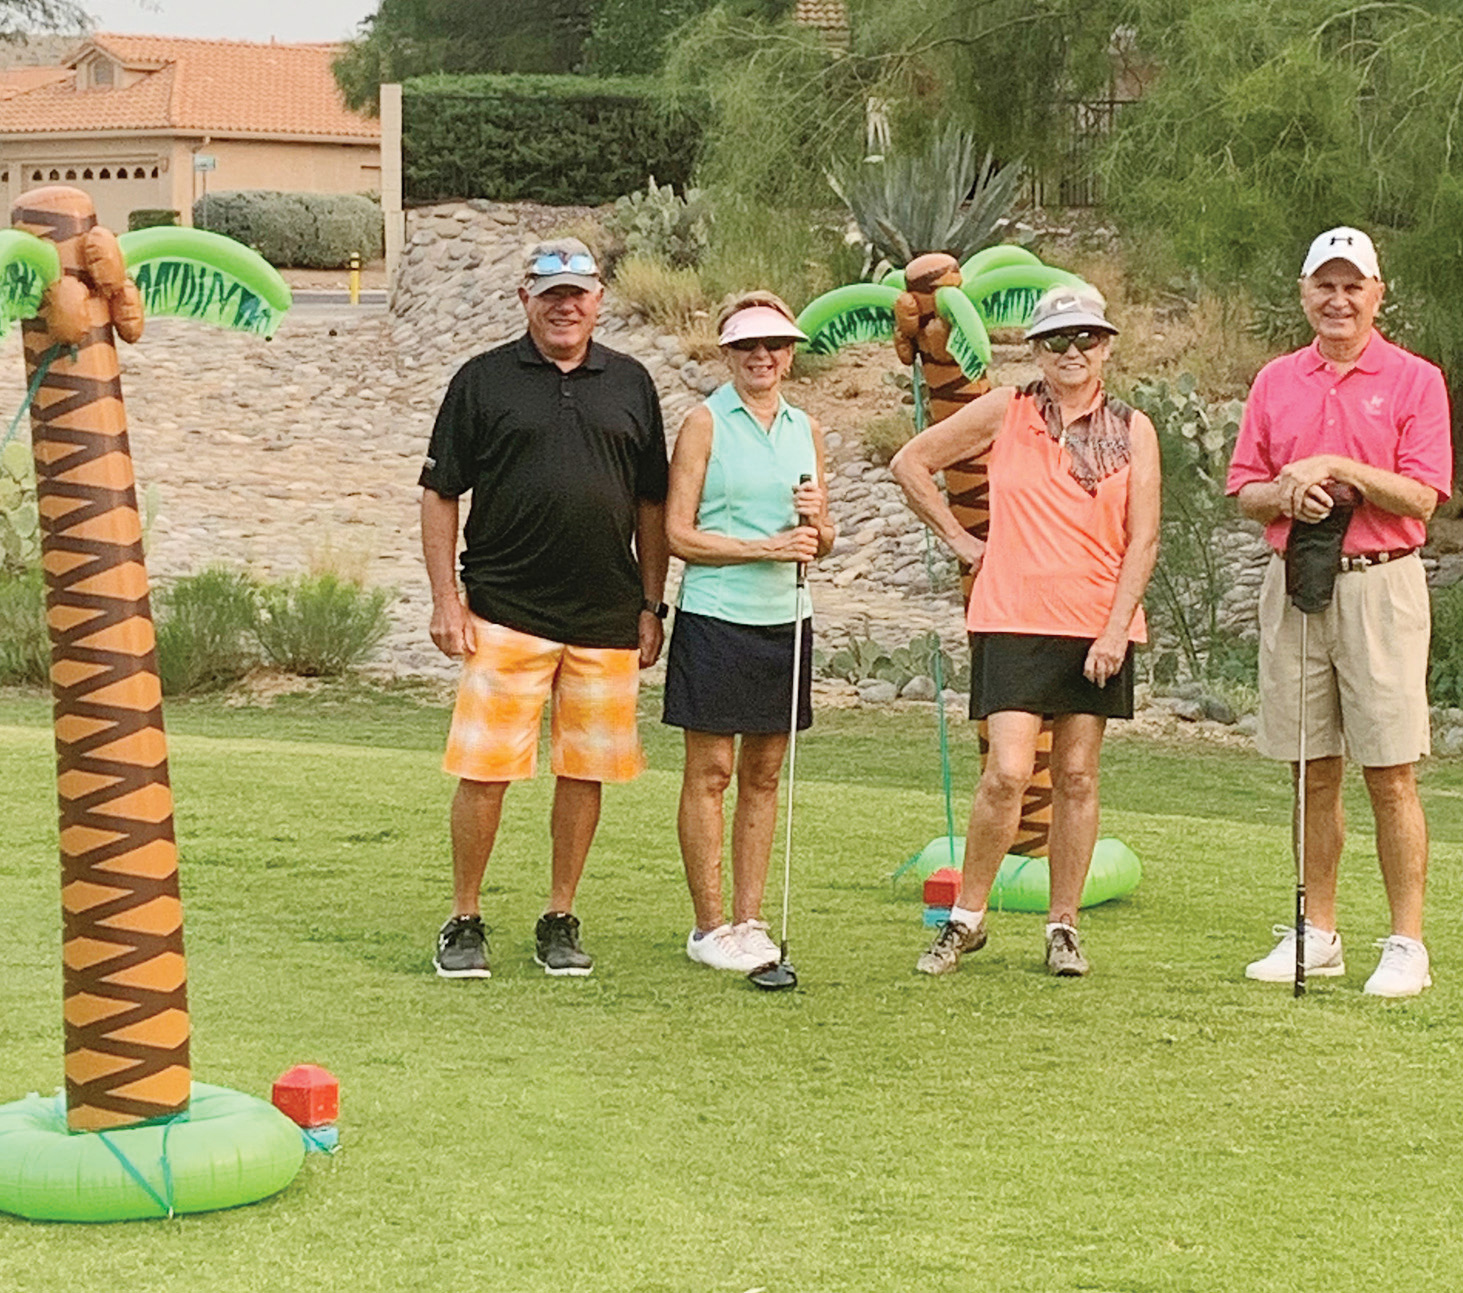 Jerry Keirn, Pam Bicknell, Sheila Clarkin, and Gary Stewart on 1st tee (Photo by Fred Pilster and Jane Chanik)